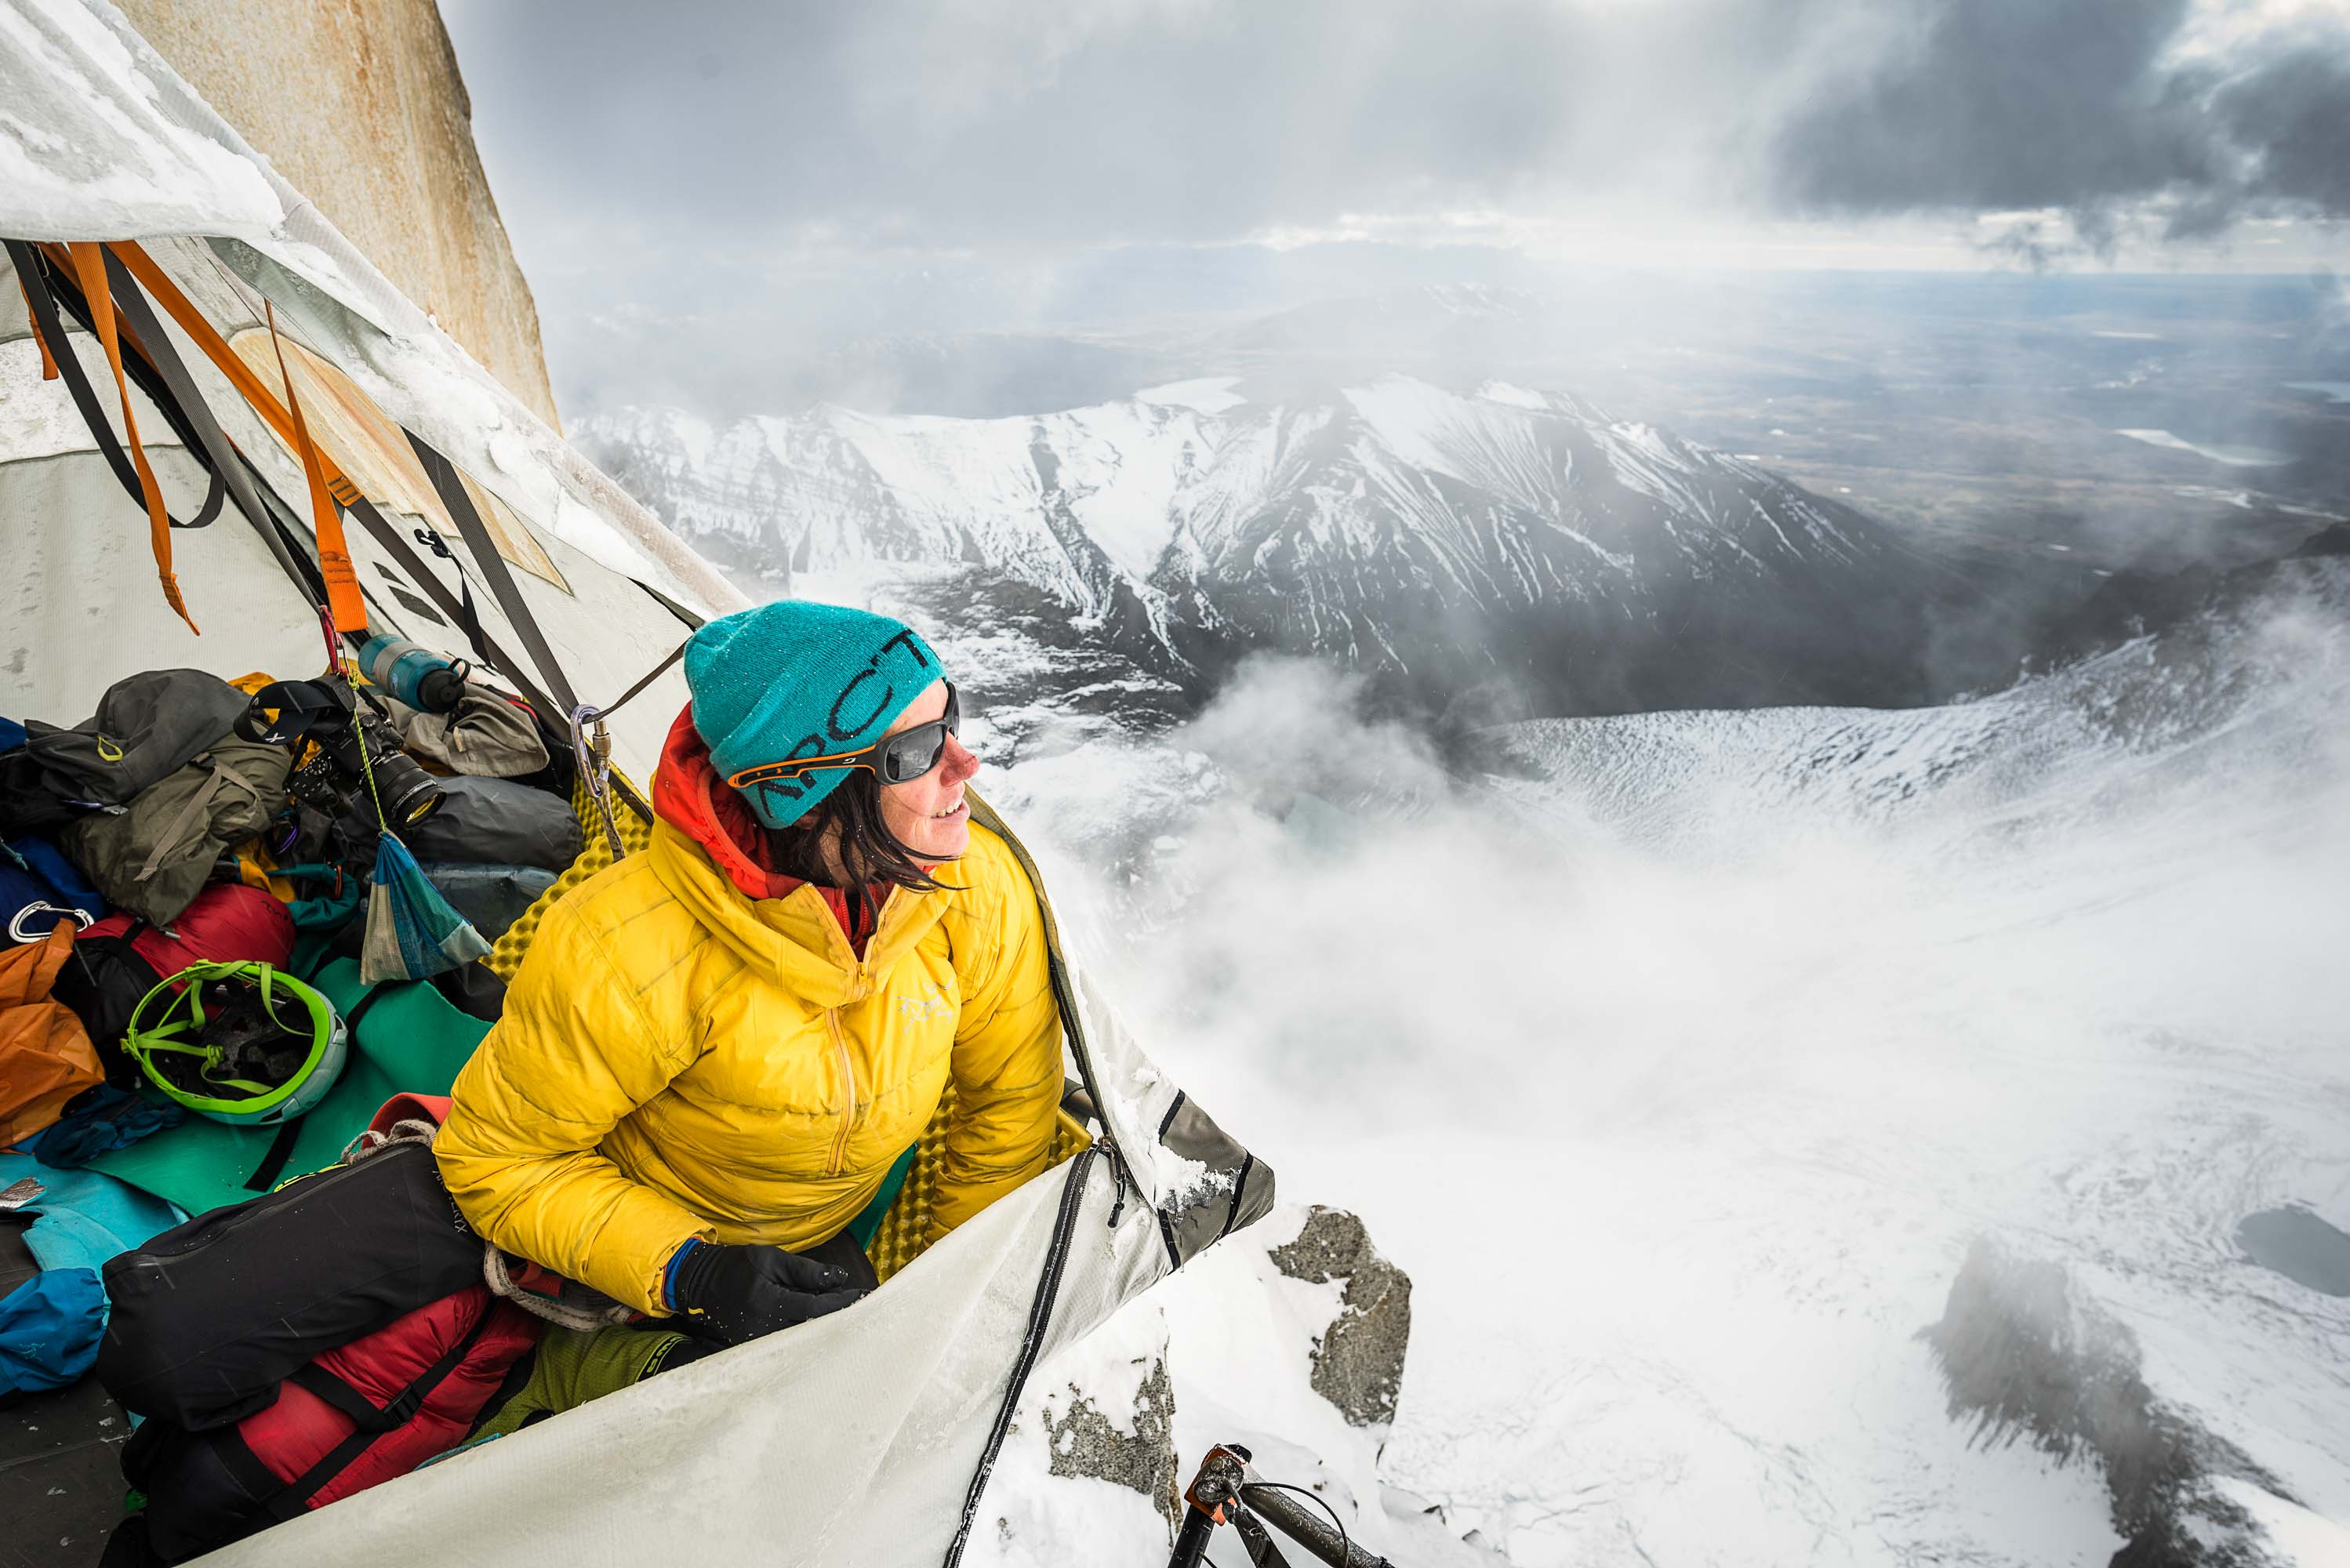 Ines Papert resting in the portaledge 600m above ground on the route Riders on the storm in Torres del Paine. PHOTO: THOMAS SENF